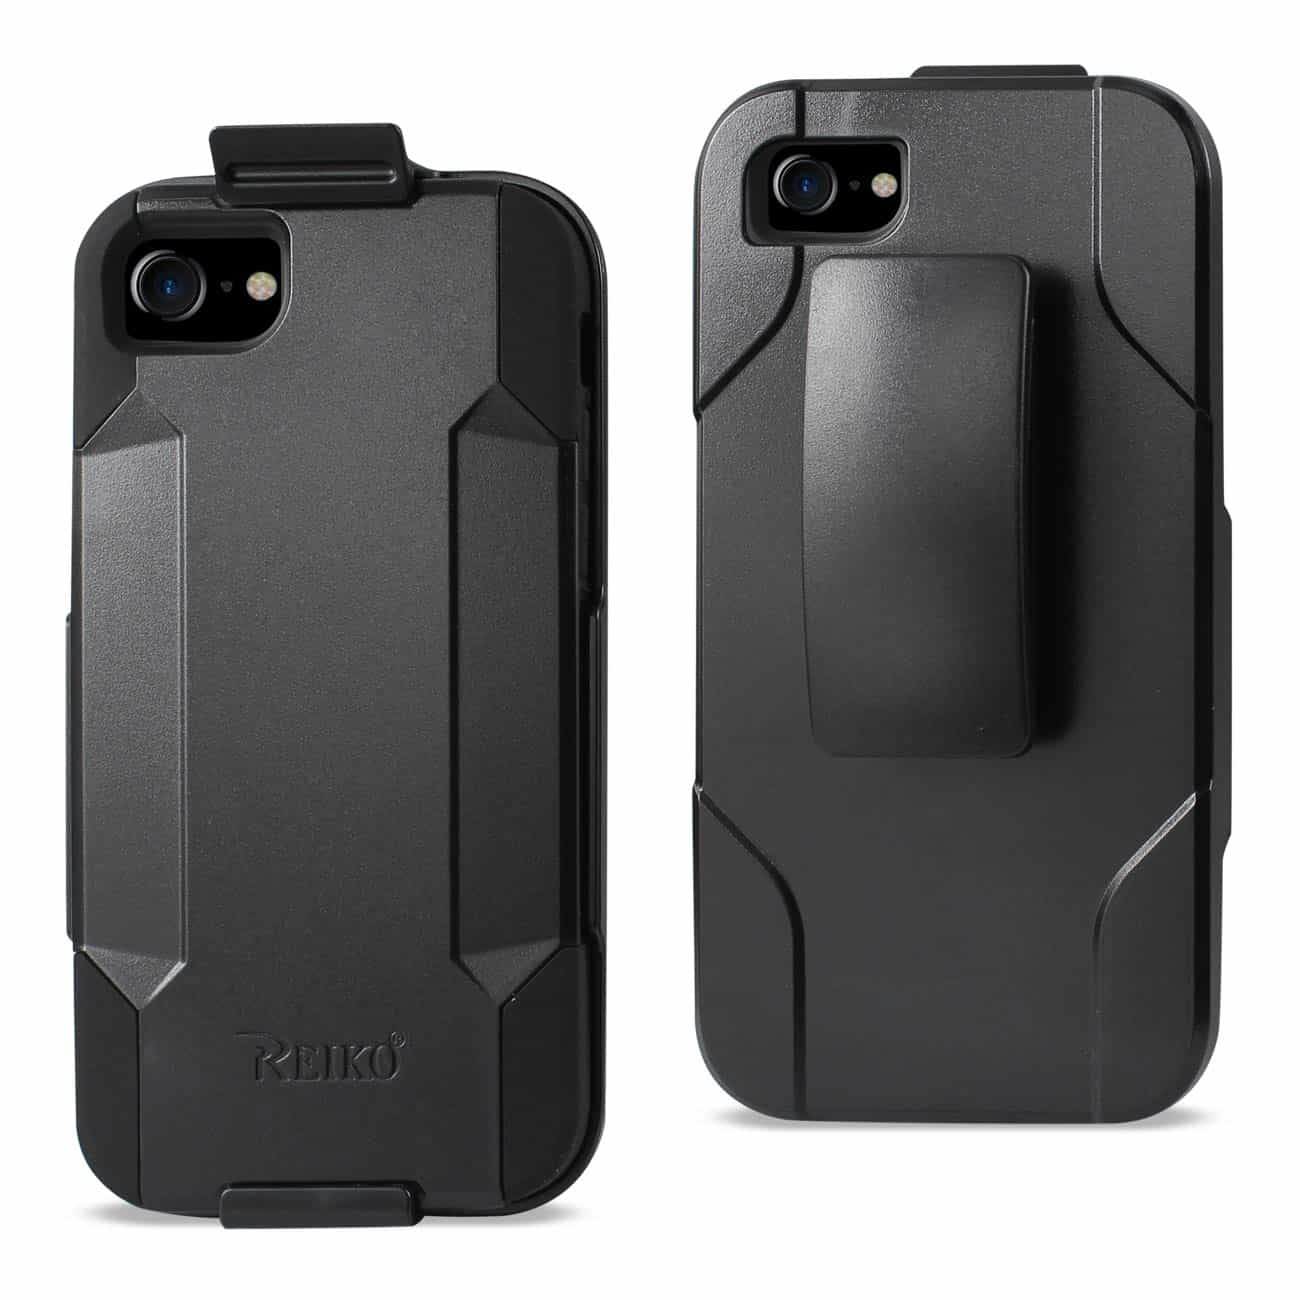 IPHONE 7 3-IN-1 HYBRID HEAVY DUTY HOLSTER COMBO CASE IN BLACK